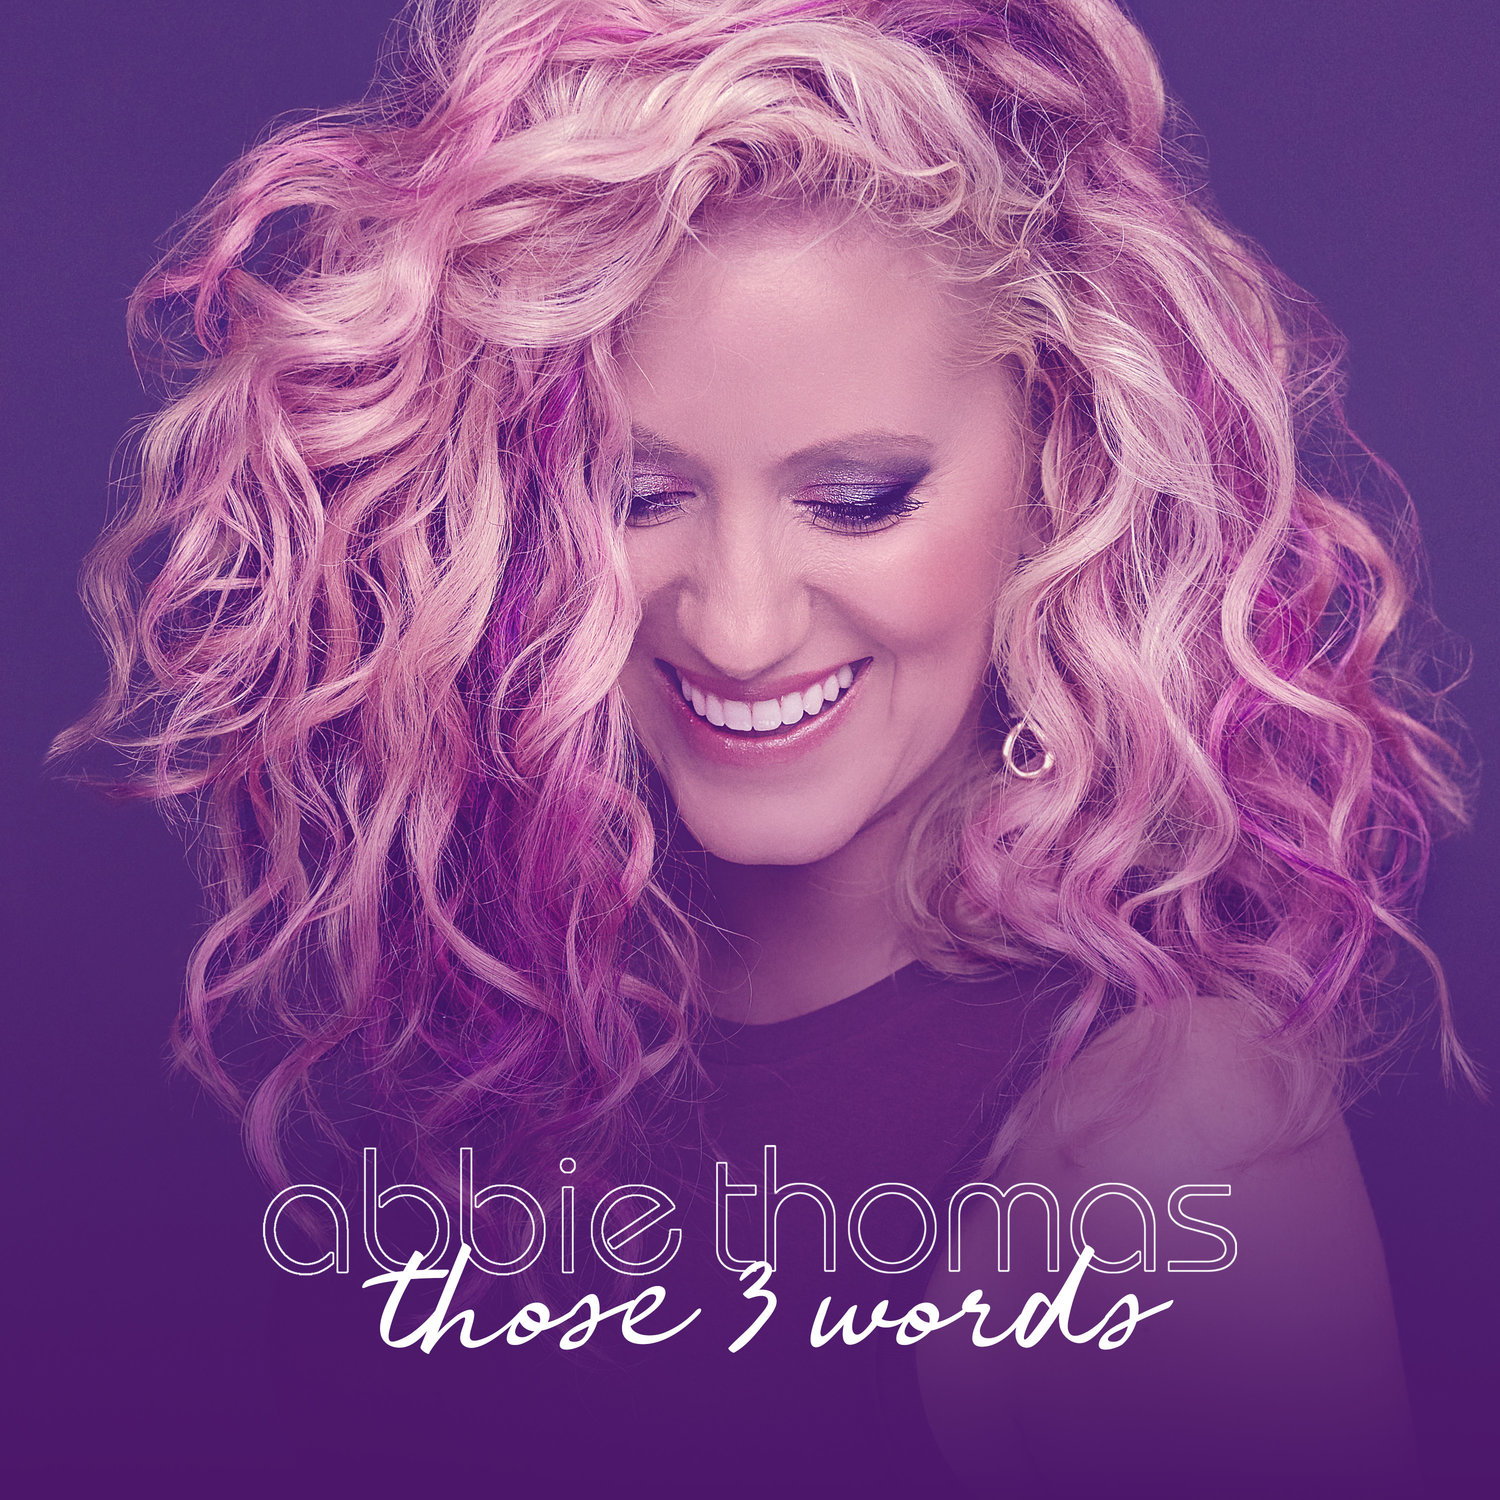 Abbie Thomas released her debut single, Those 3 Words, on April 10, 2020.